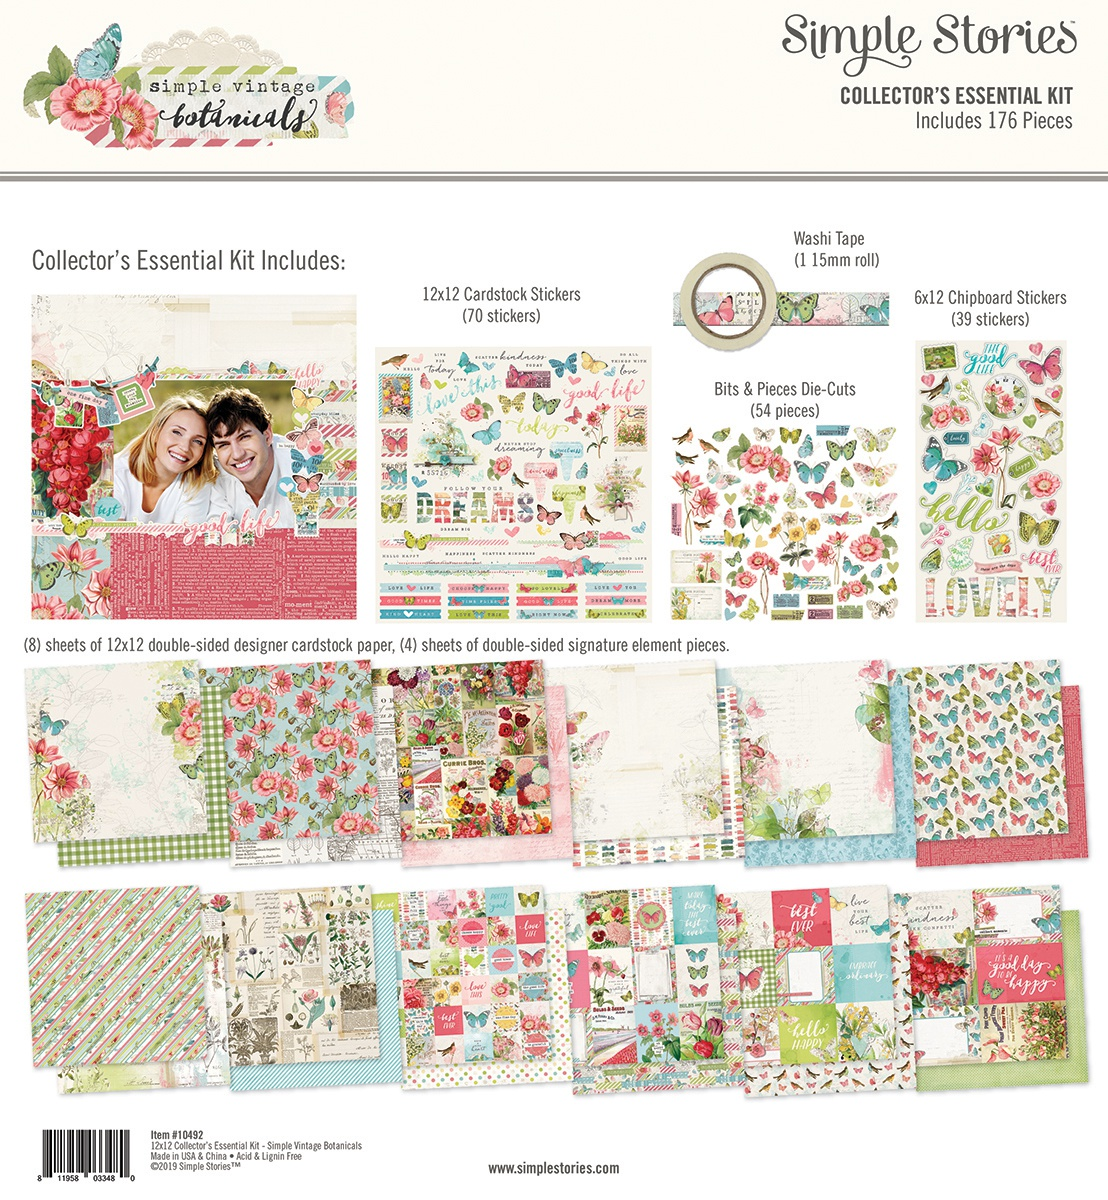 Simple Stories Collector's Essential Kit 12X12-Simple Vintage Botanicals